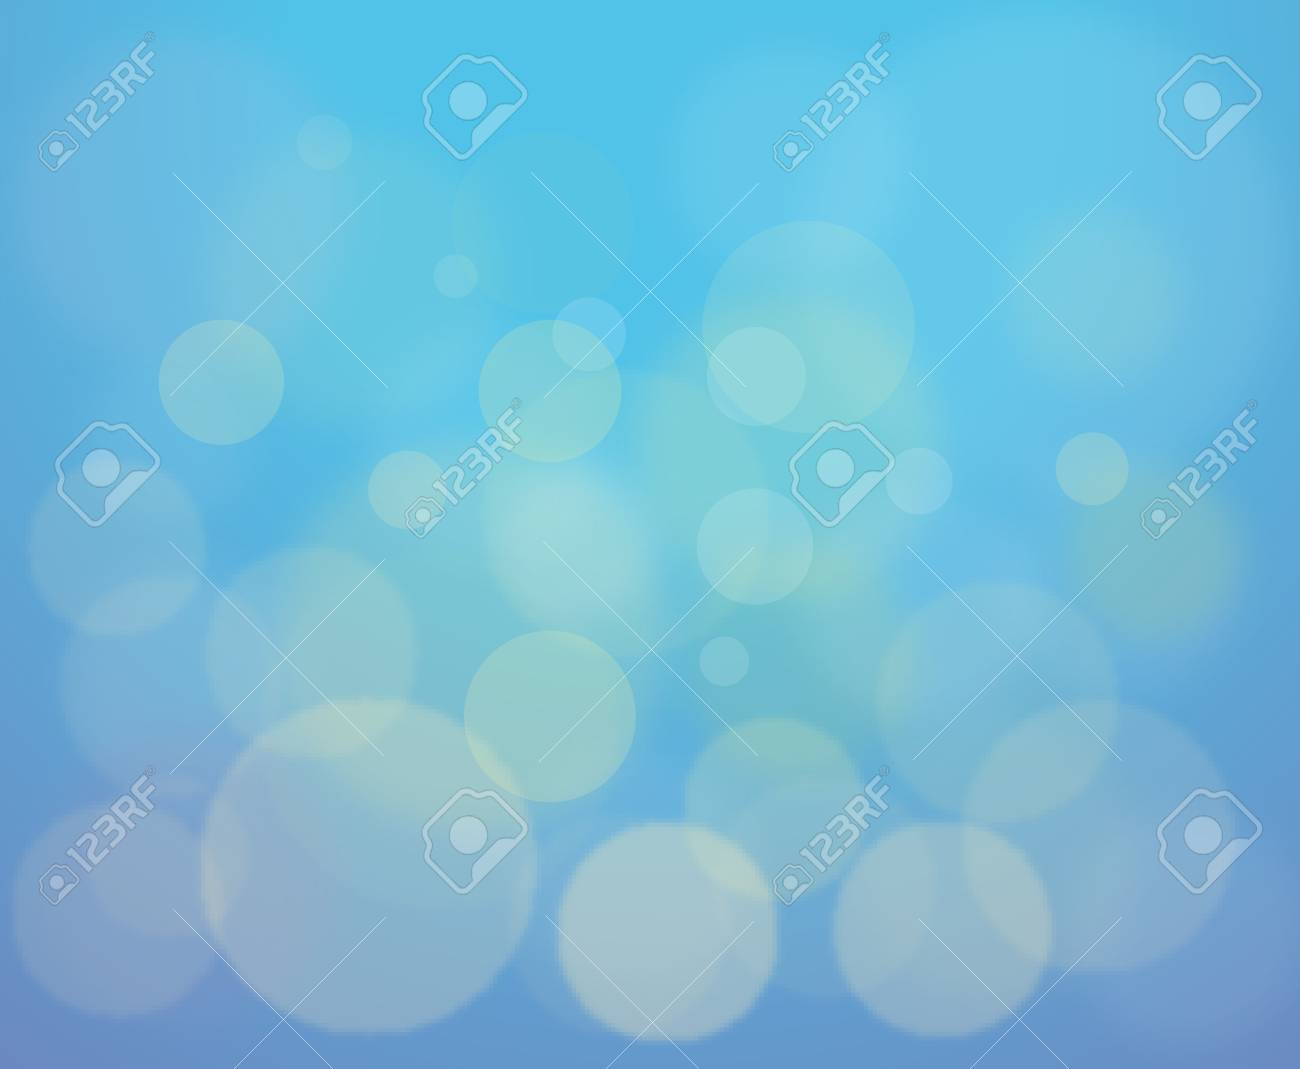 Illustration of blury shapes abstract background Stock Vector - 13494127